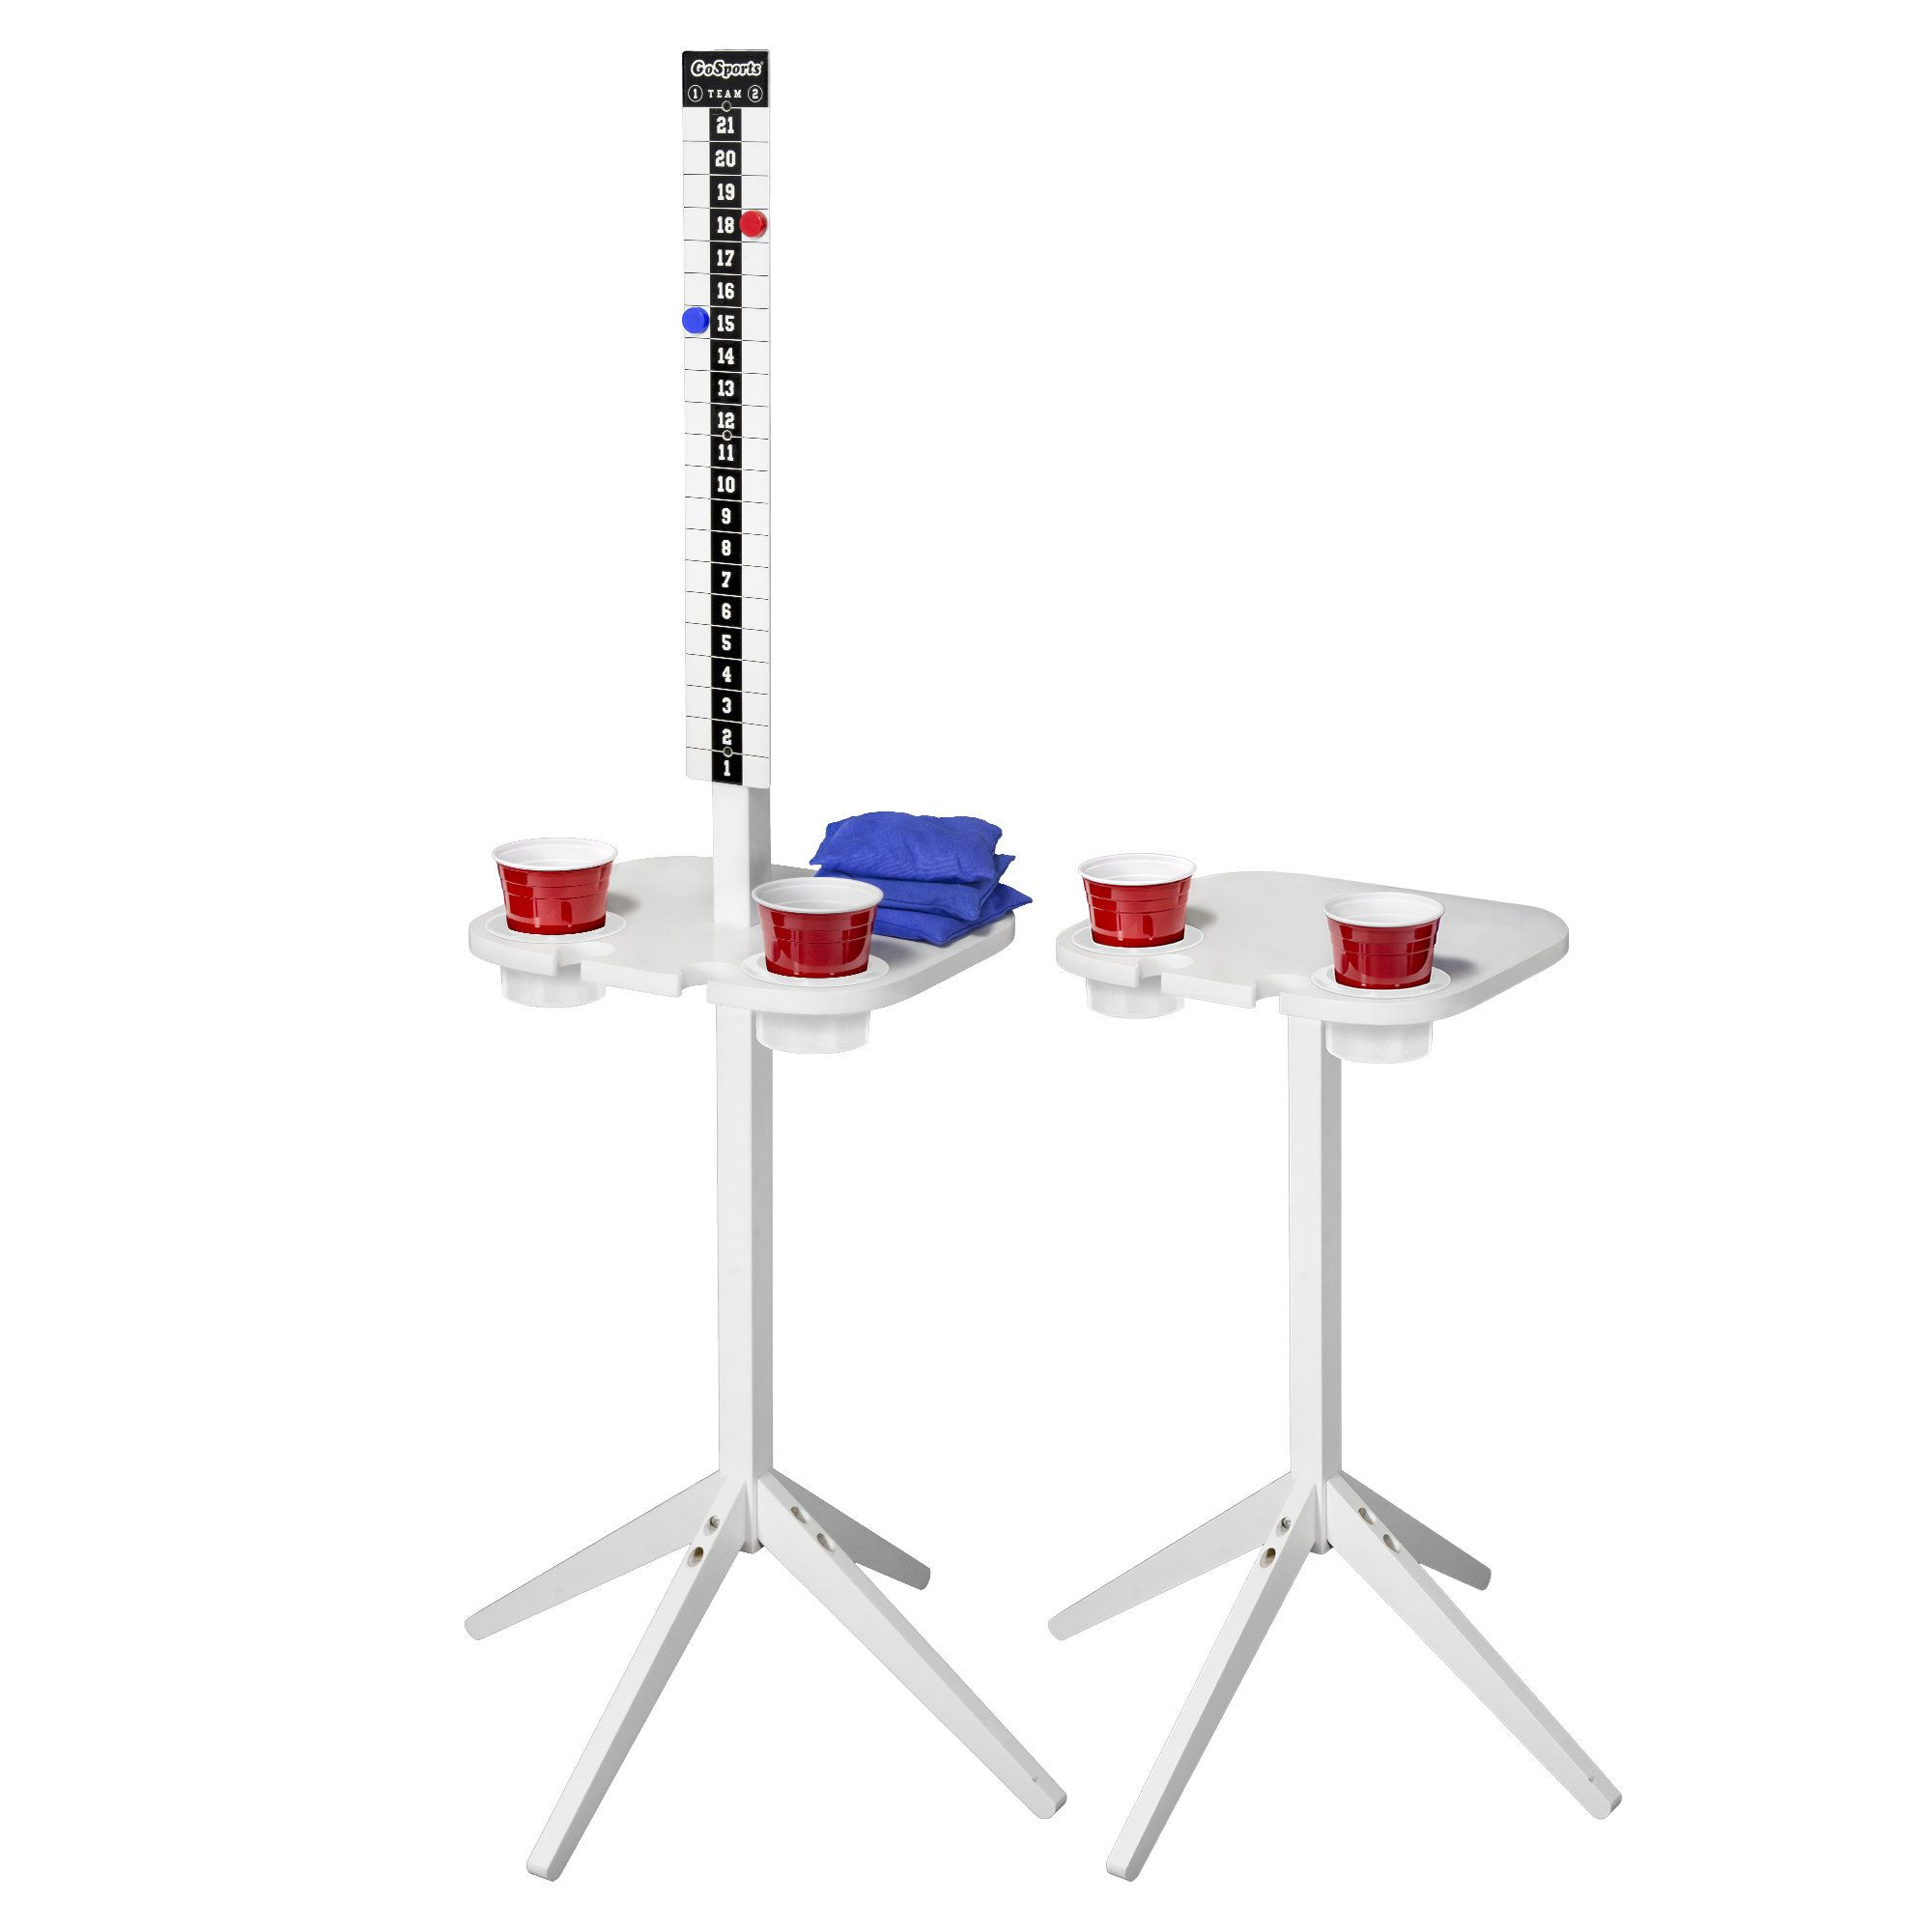 Score Caddy Portable Beer Pong Table Drink stand, Beer